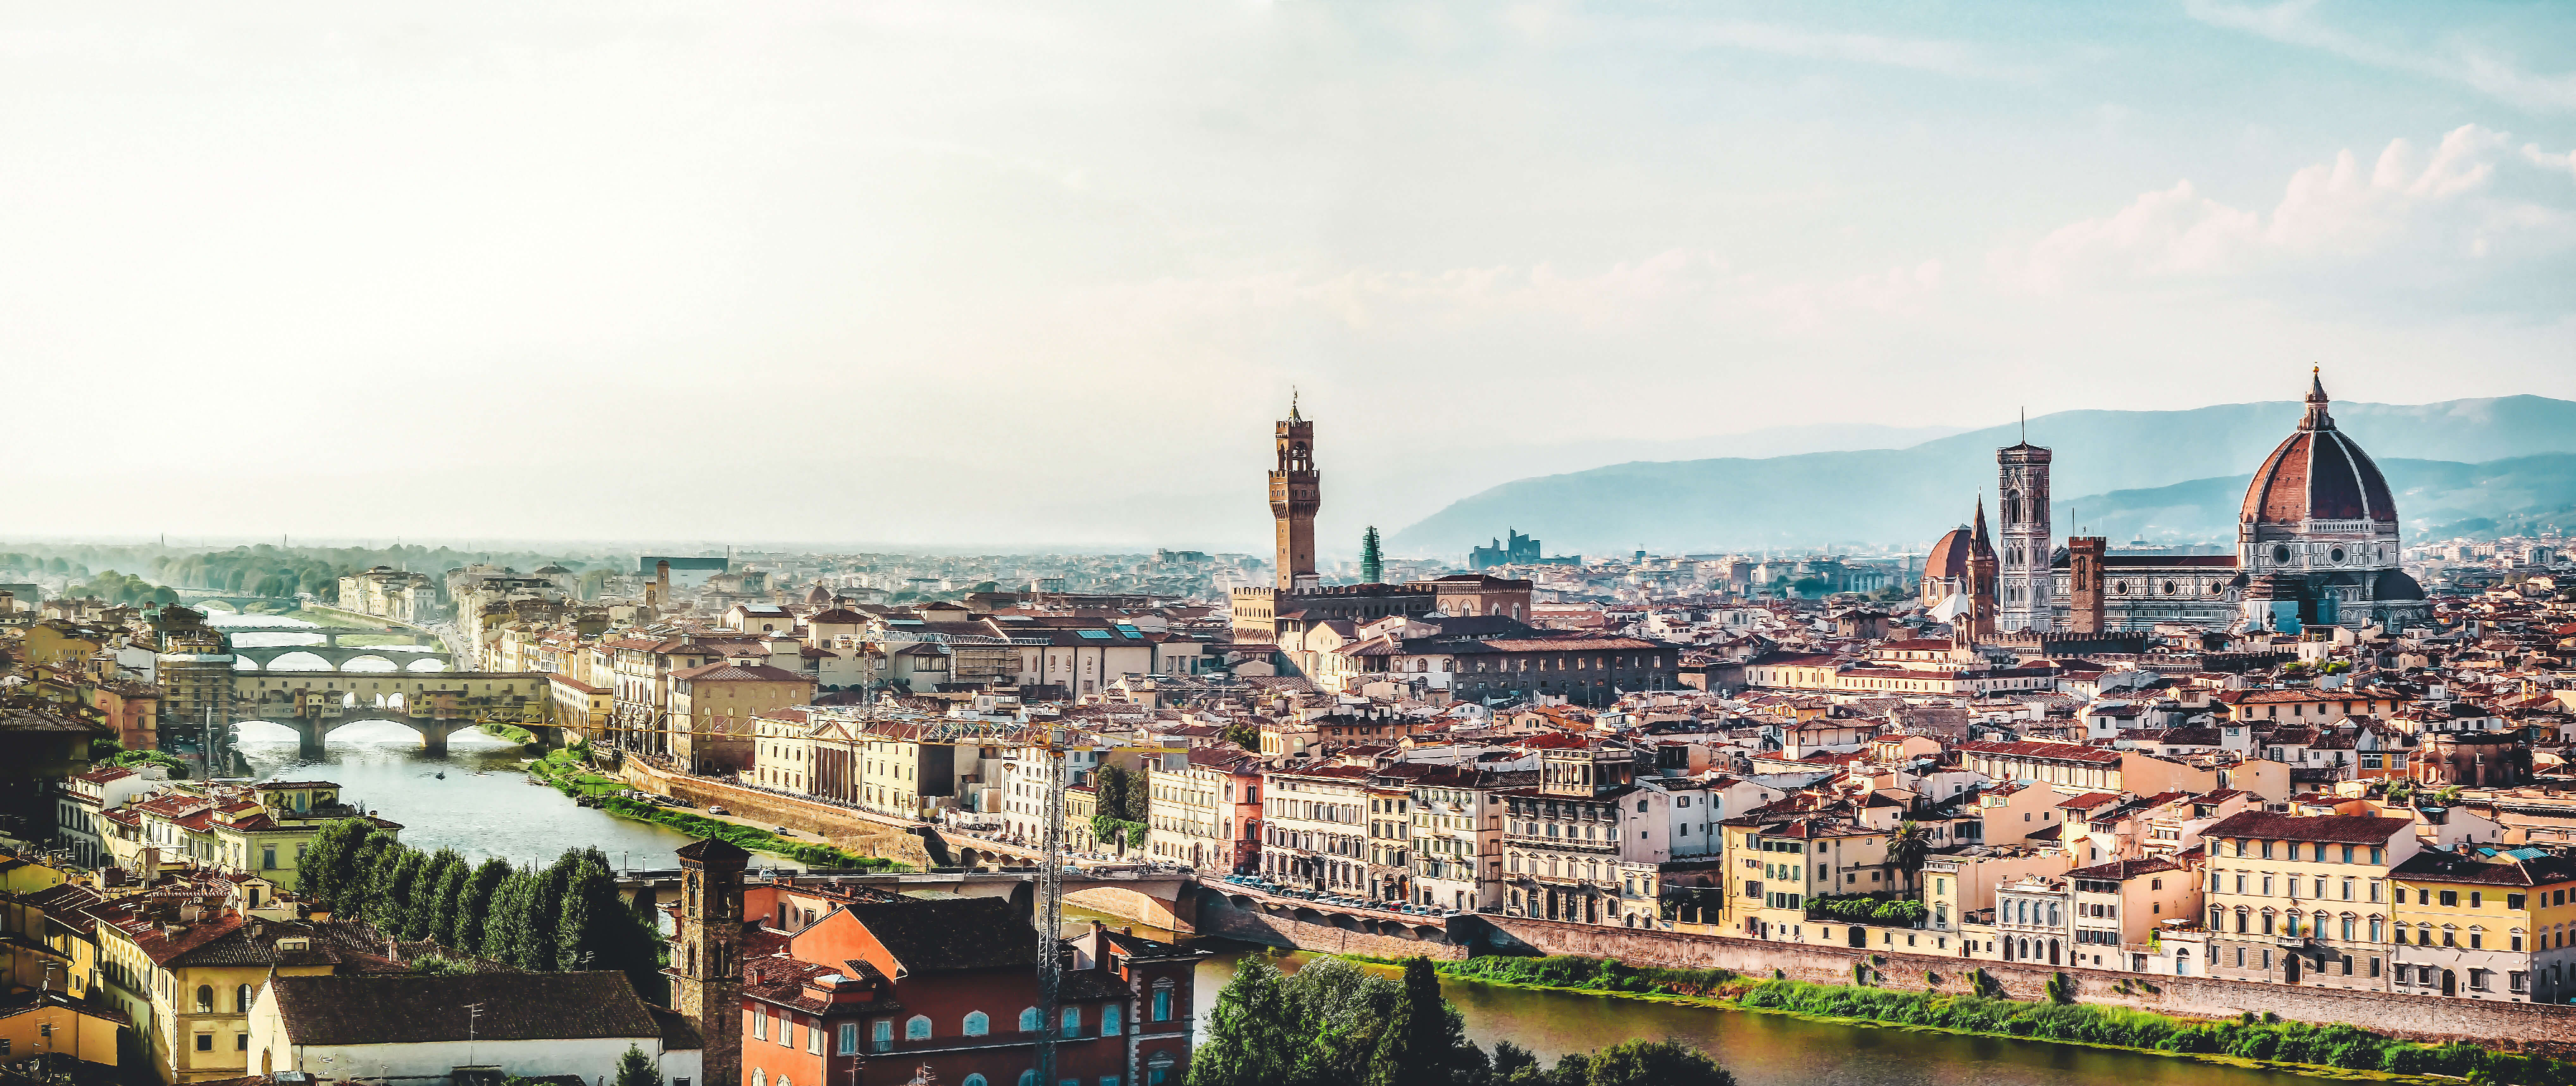 view of an Italian city with a river running through